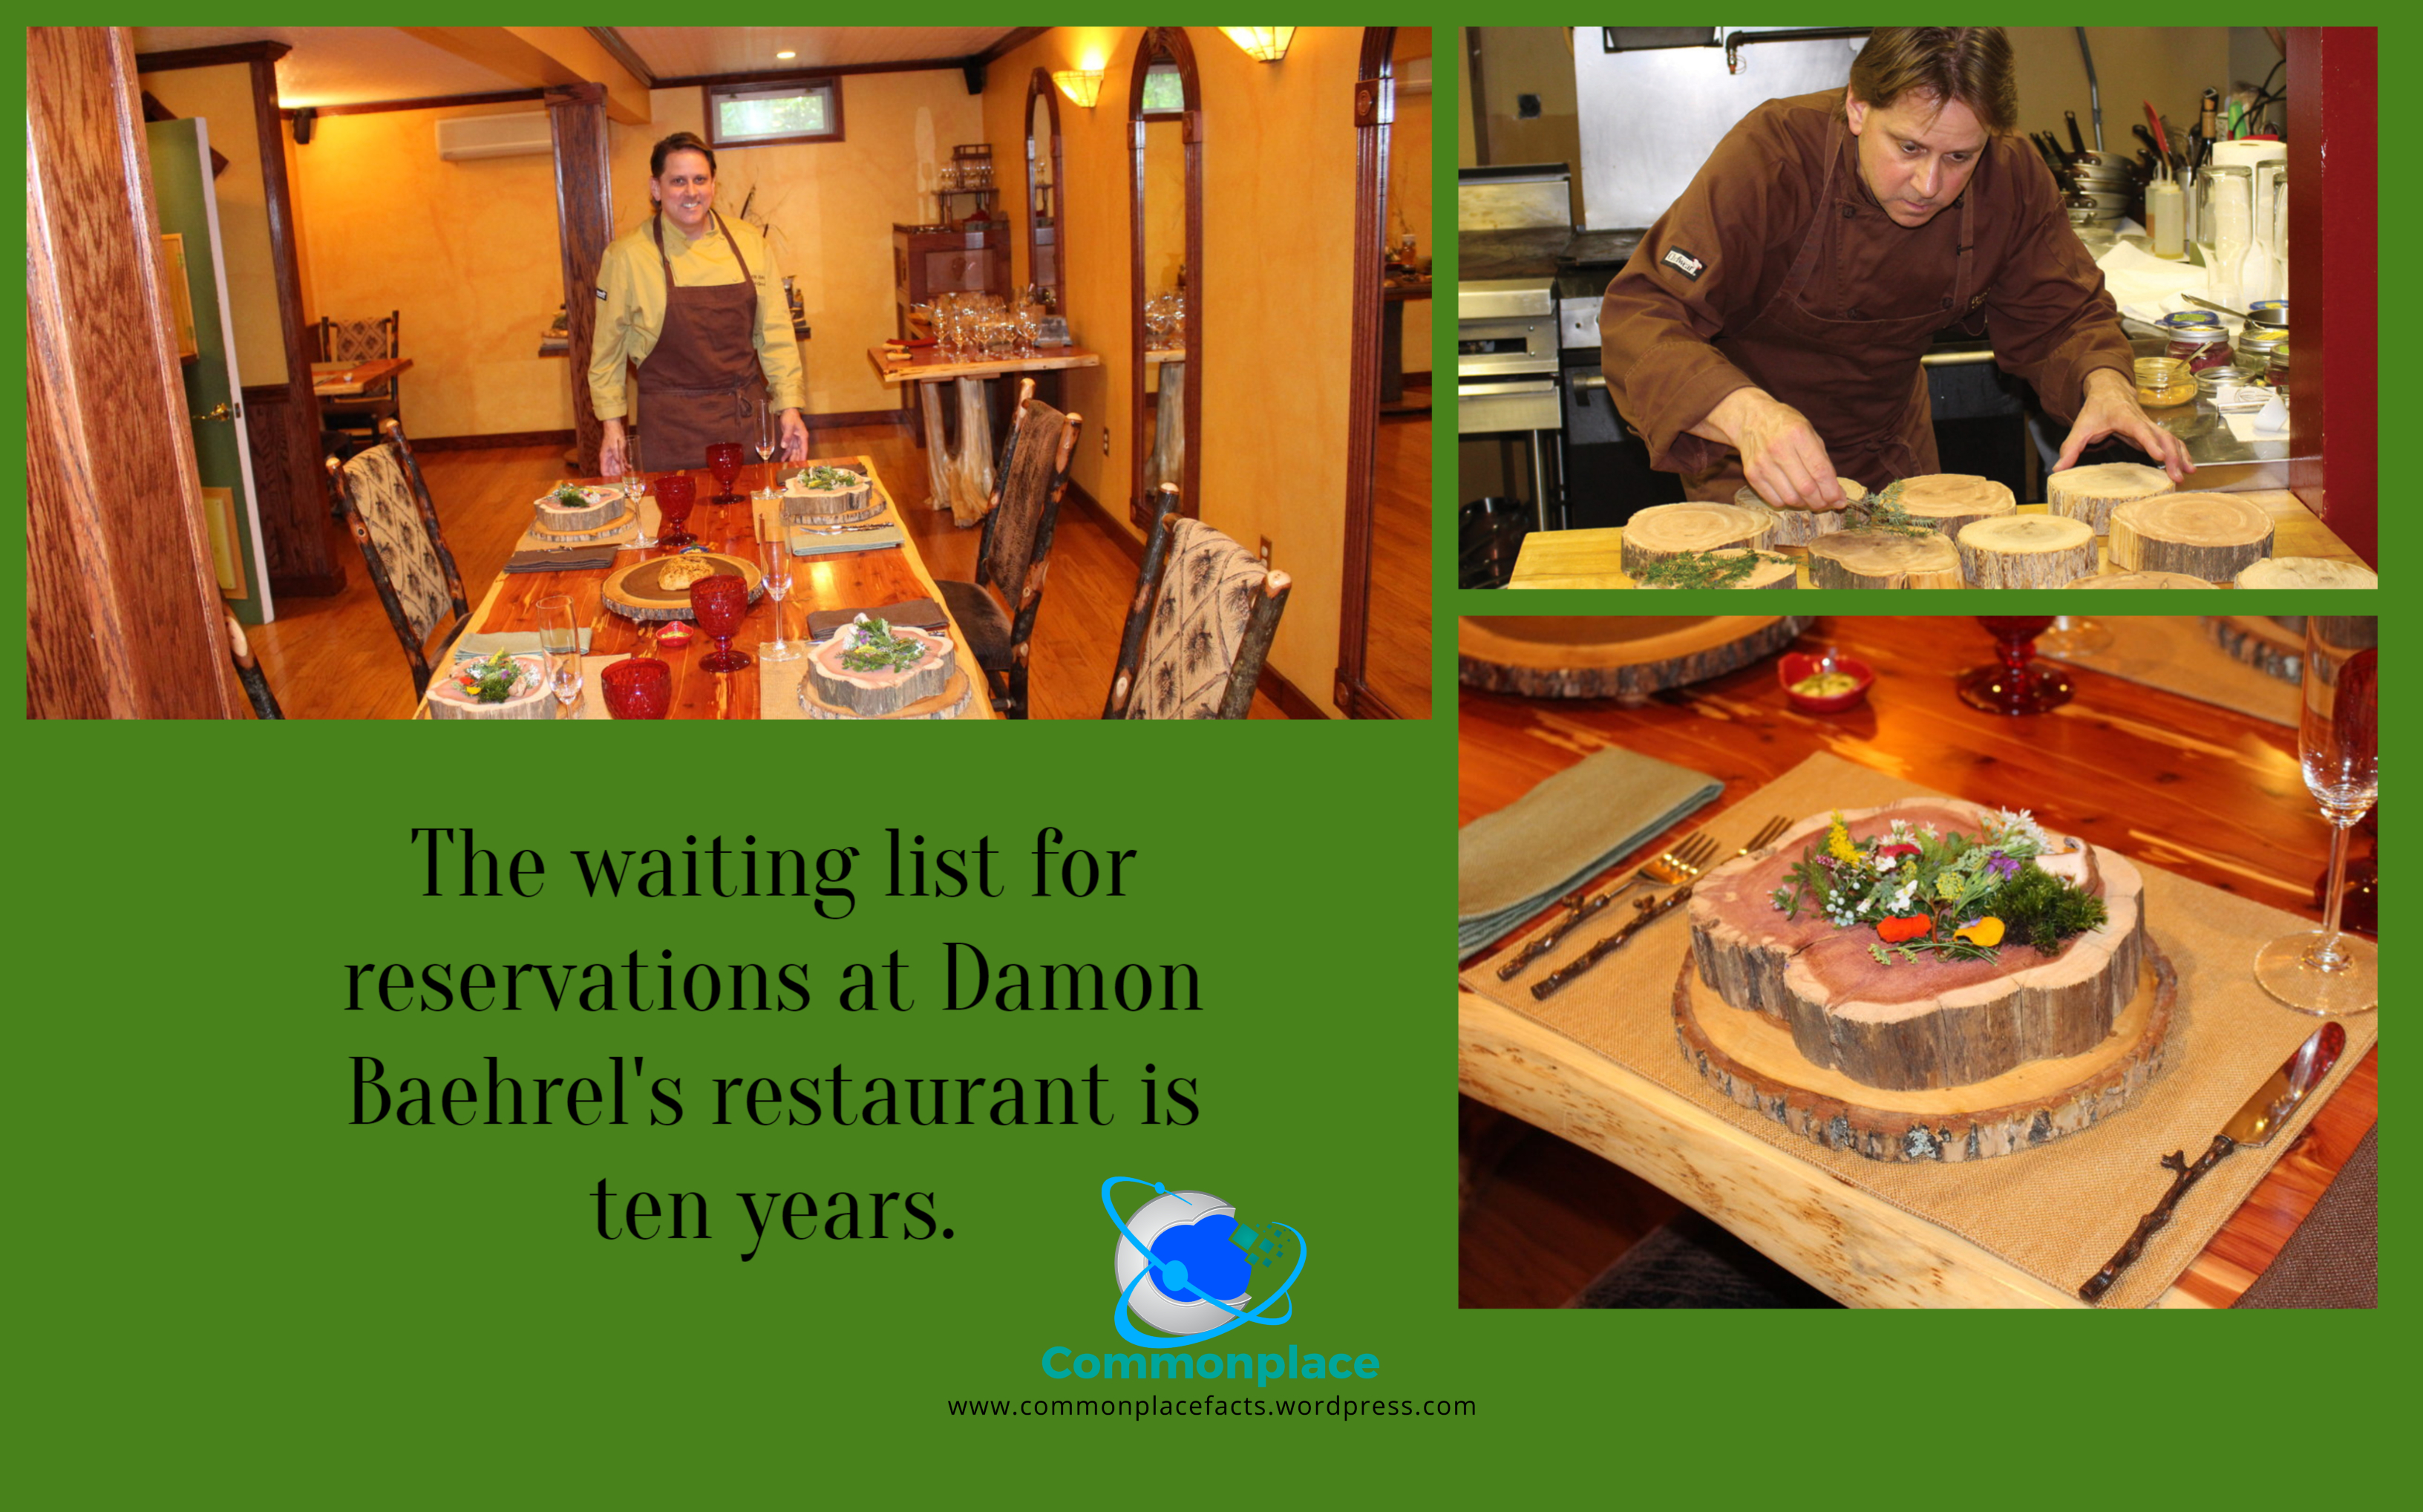 The waiting list for reservations at Damon Baehrel's restaurant is ten years.